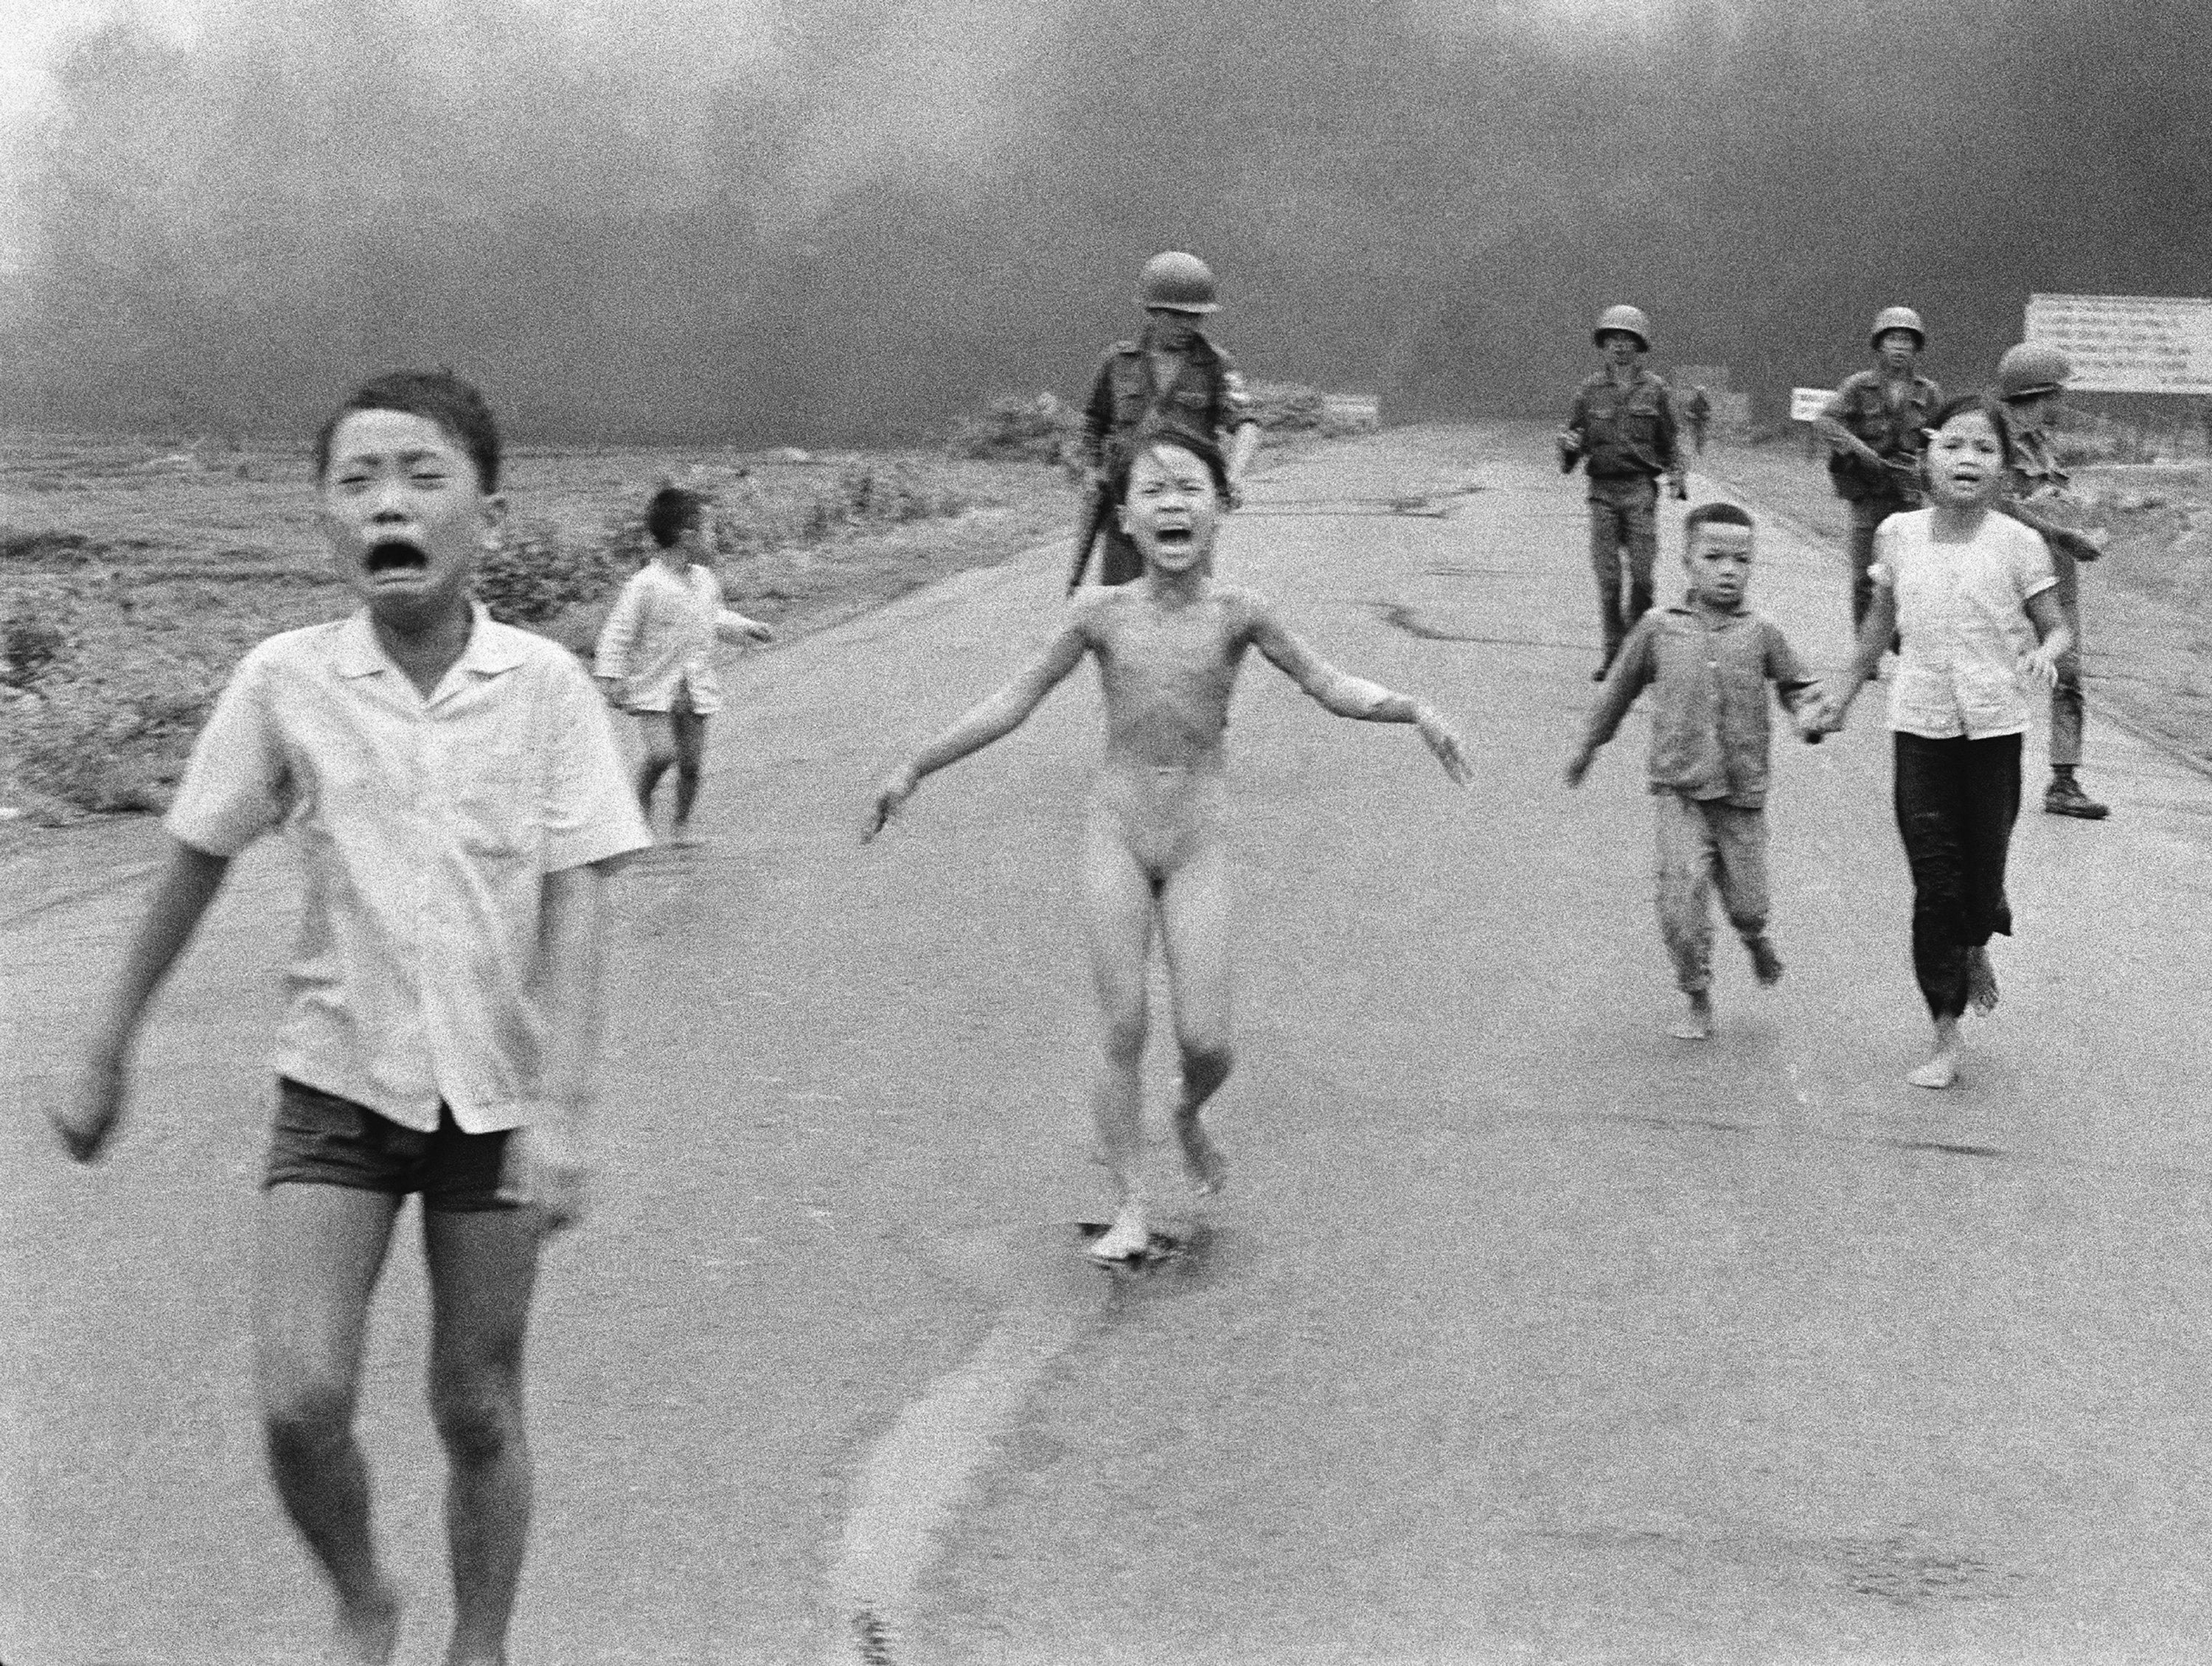 Nick Ut, AP photographer behind 'Napalm Girl,' to retire